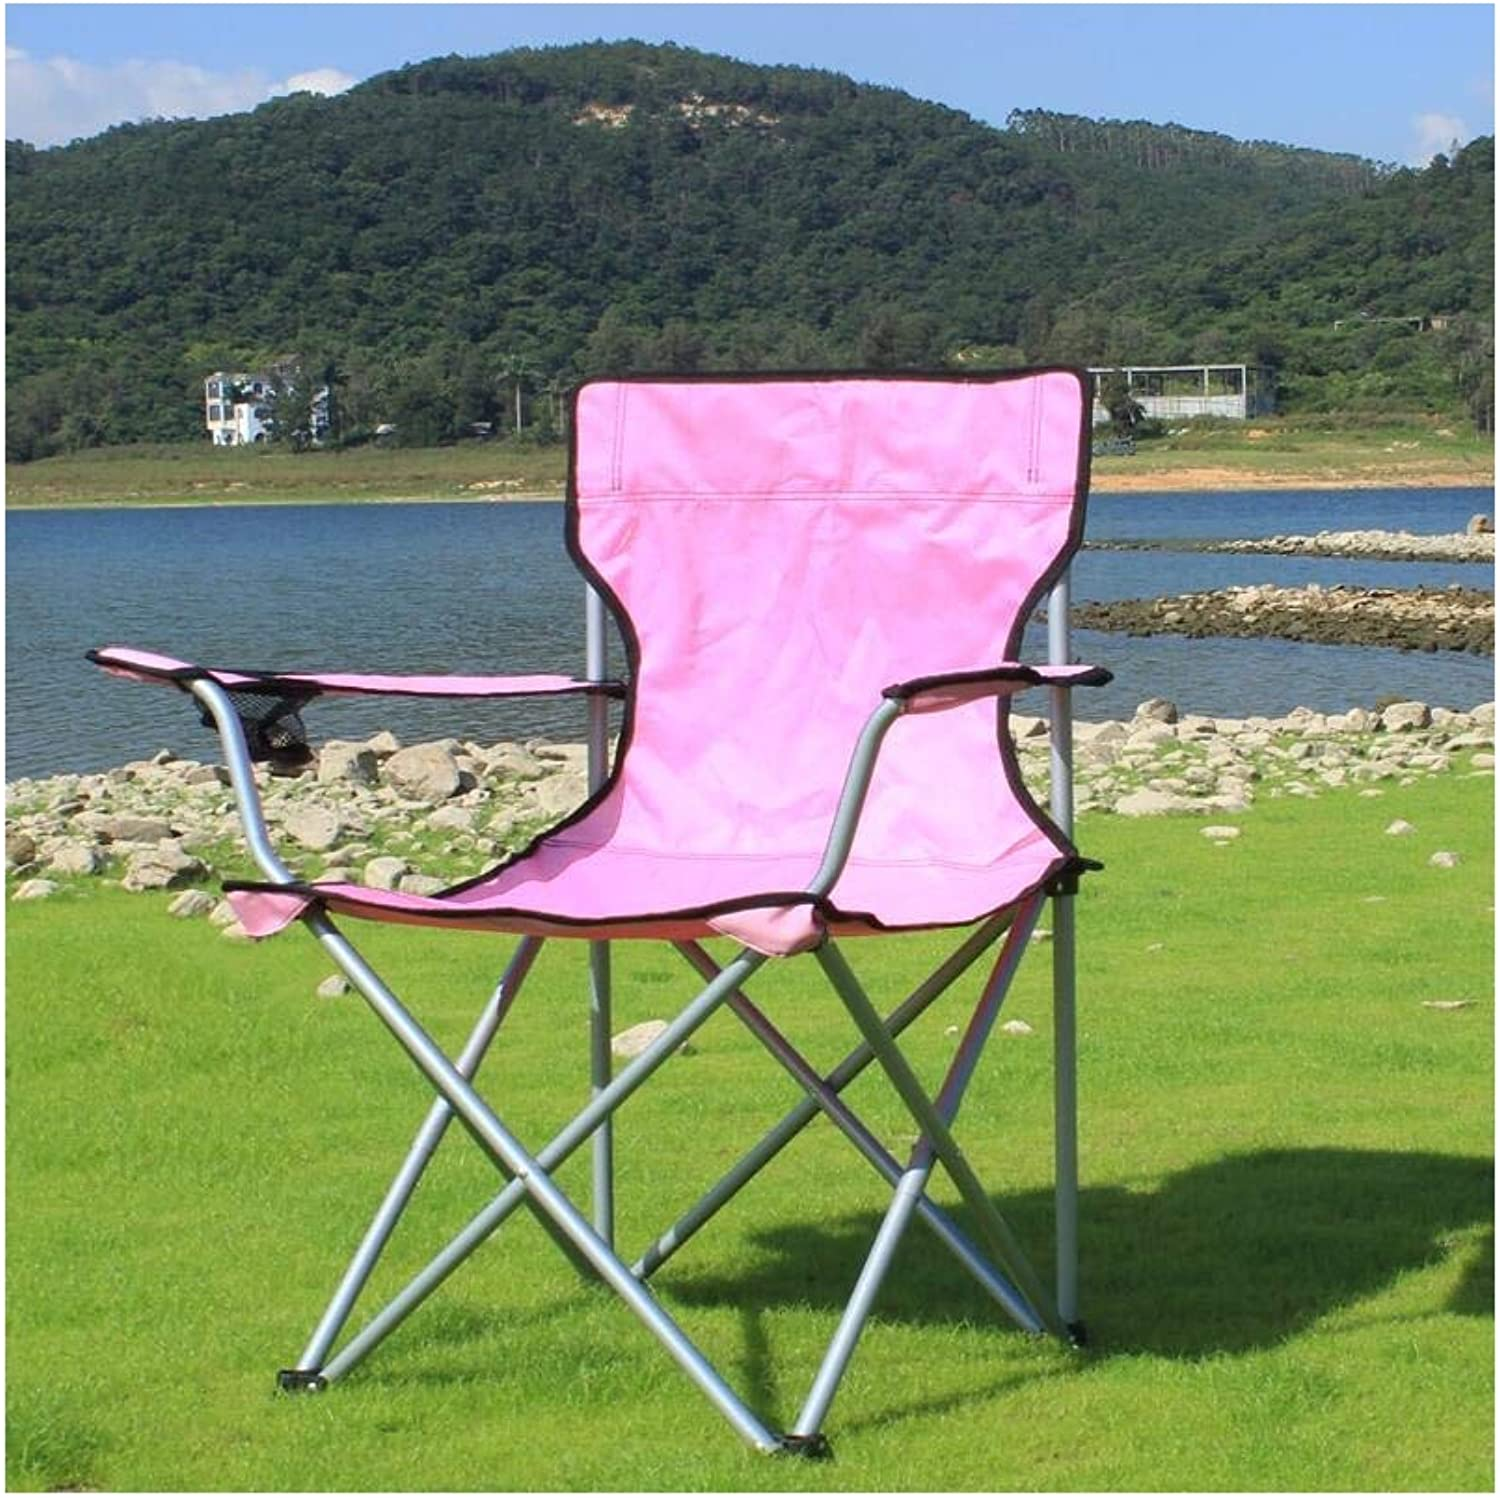 Garden Camping Folding Chair, Outdoor Travel Portable Lightweight Pink Backpacking Chairs Hiker Stool Fishing Seat Picnic Beach